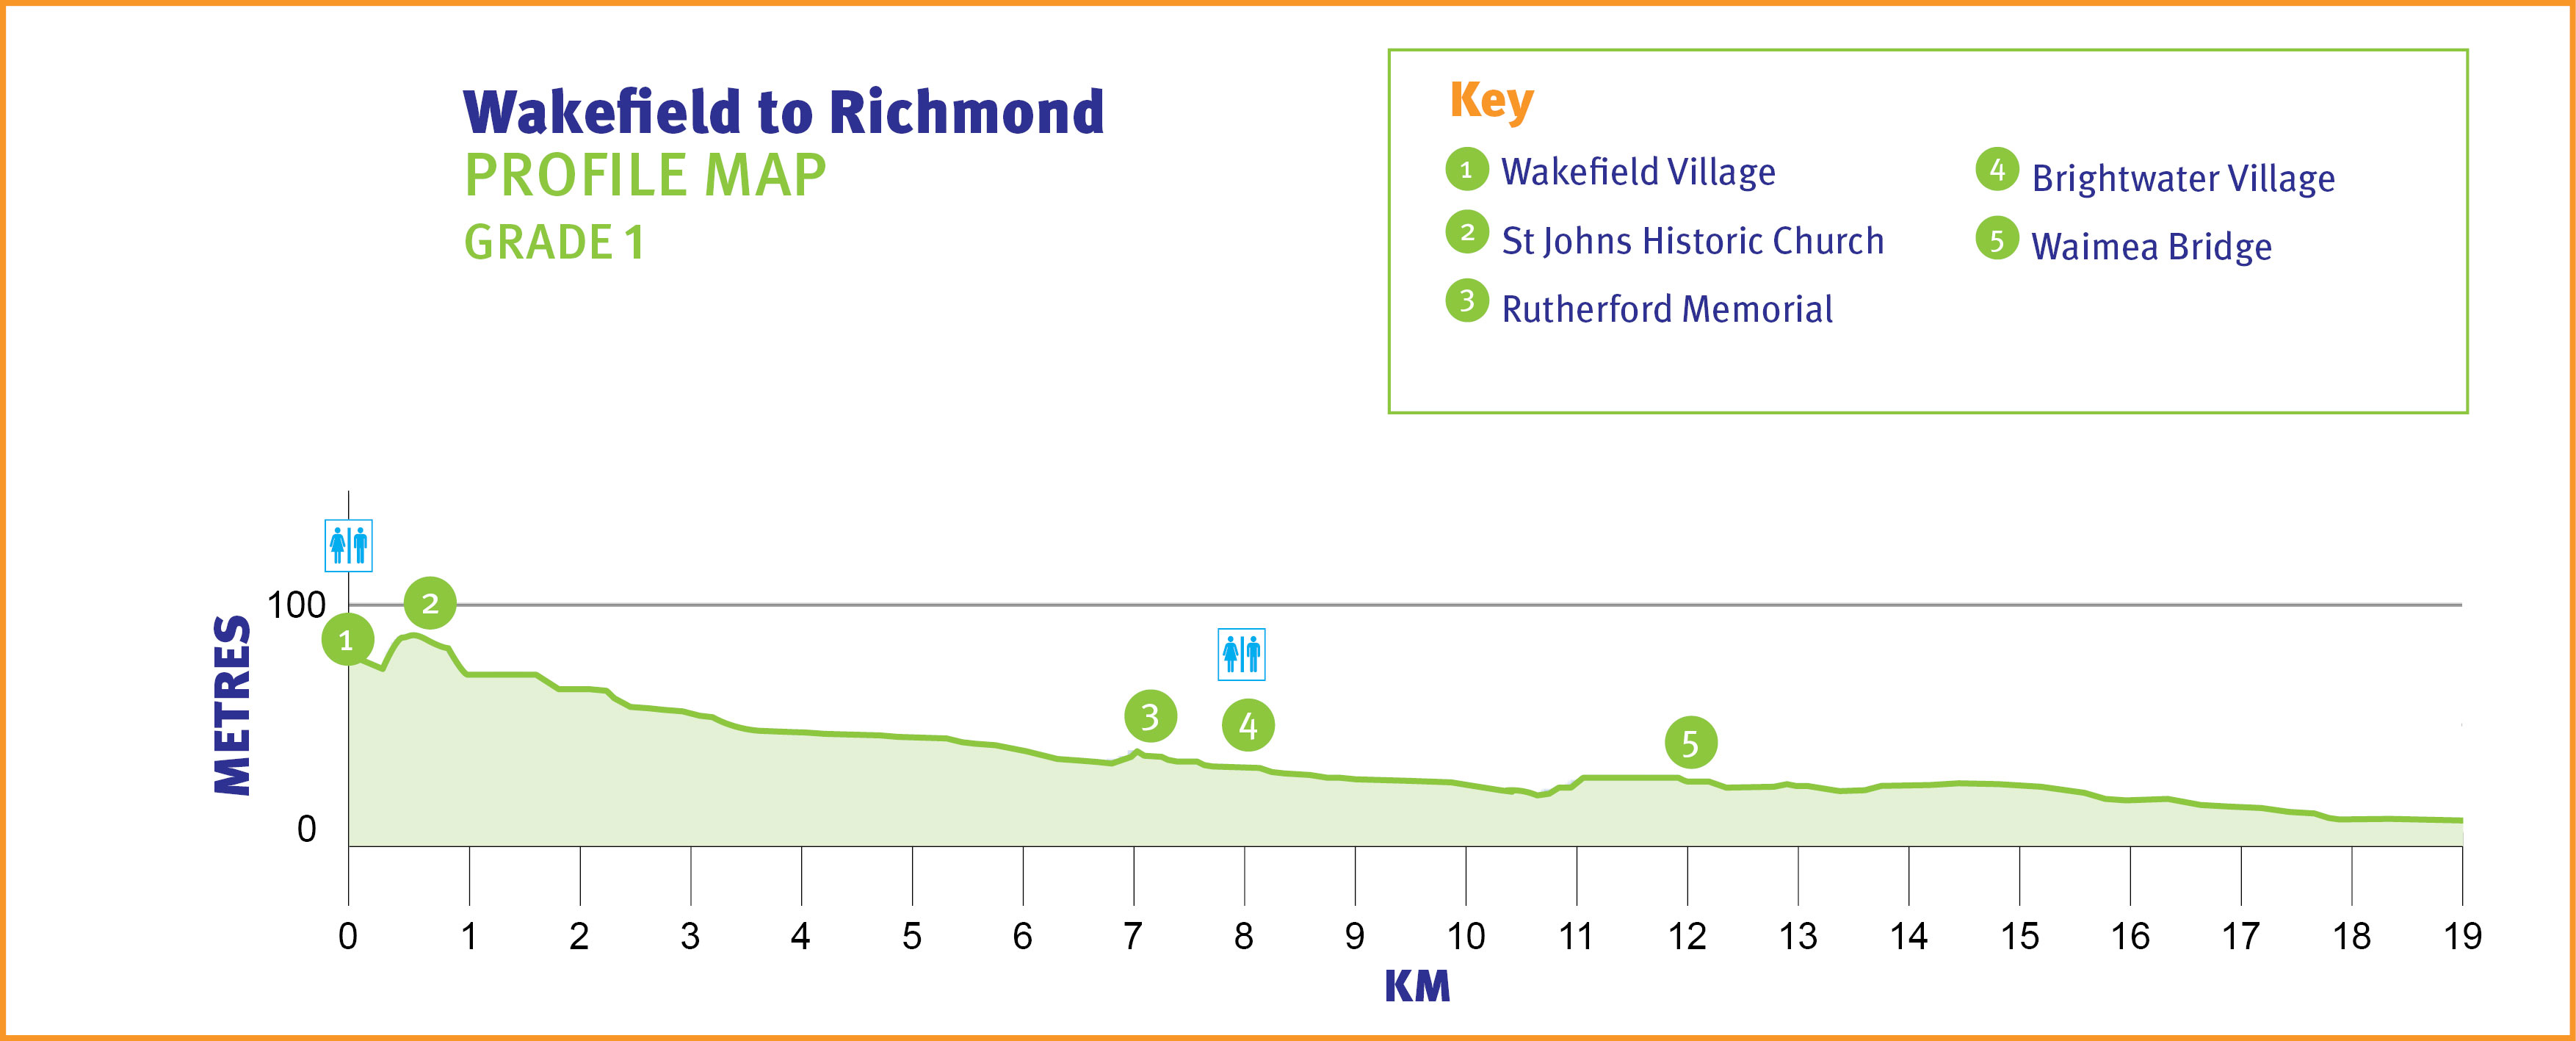 Wakefield to Richmond Profile Map